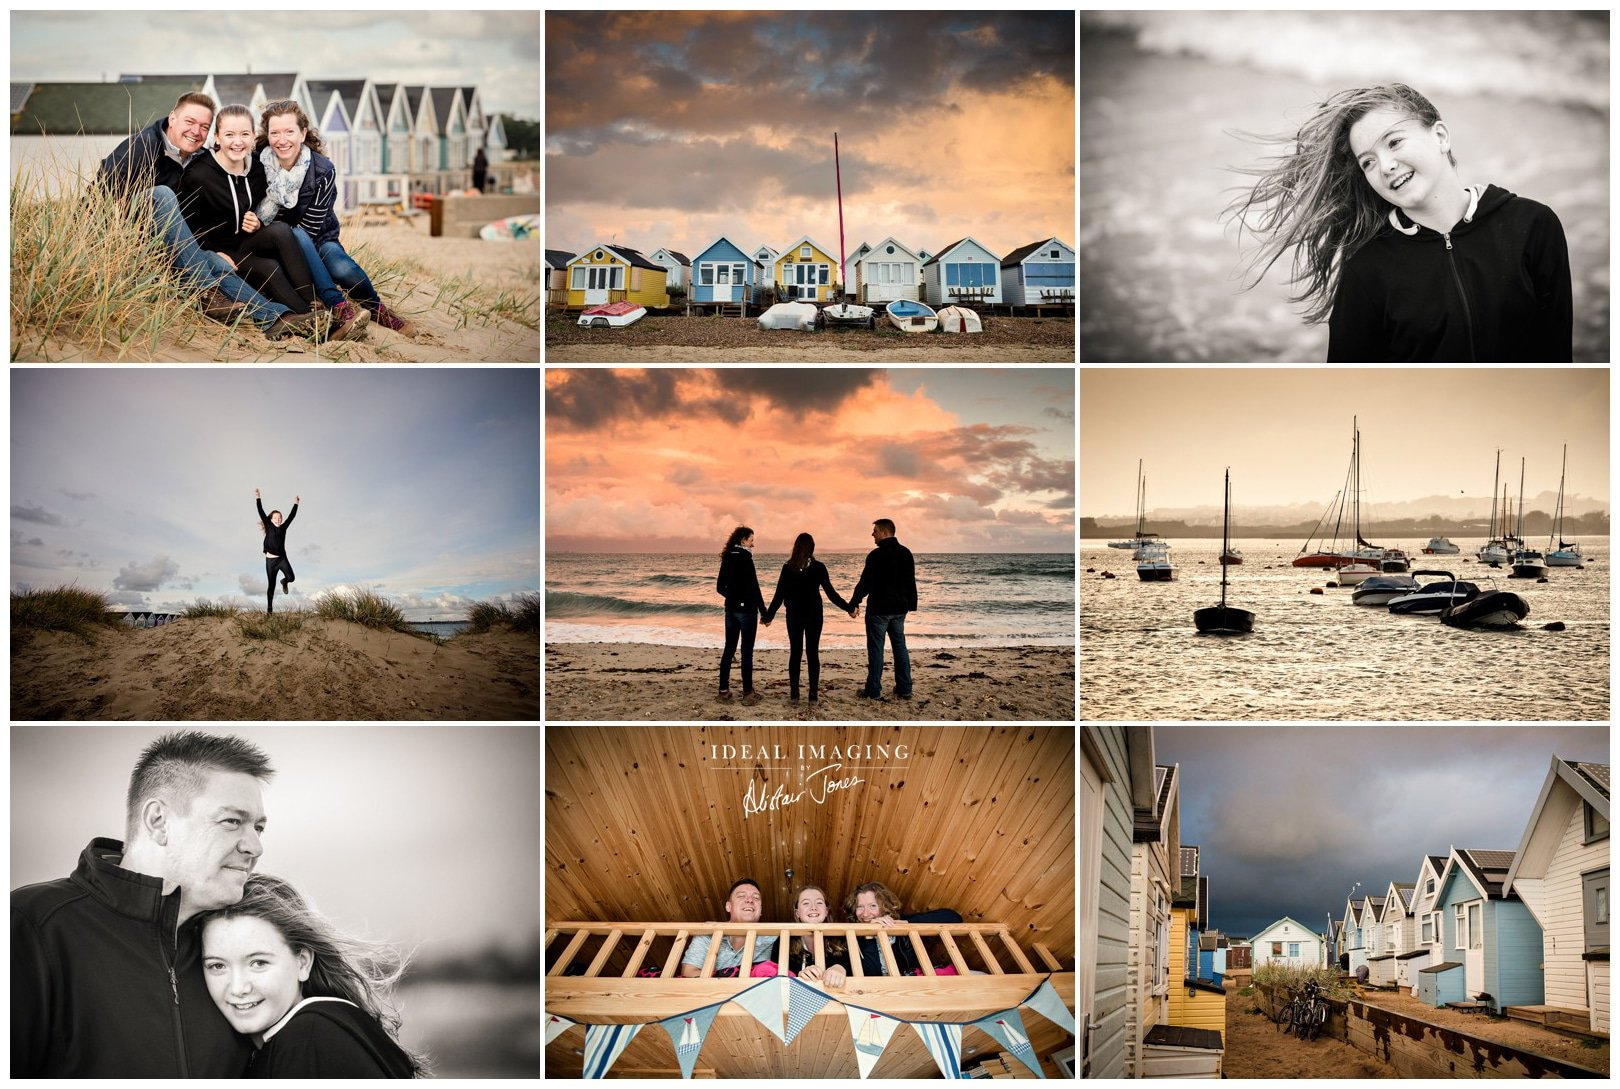 Beach Family Photographer: The Ponting Family at Mudeford Spit